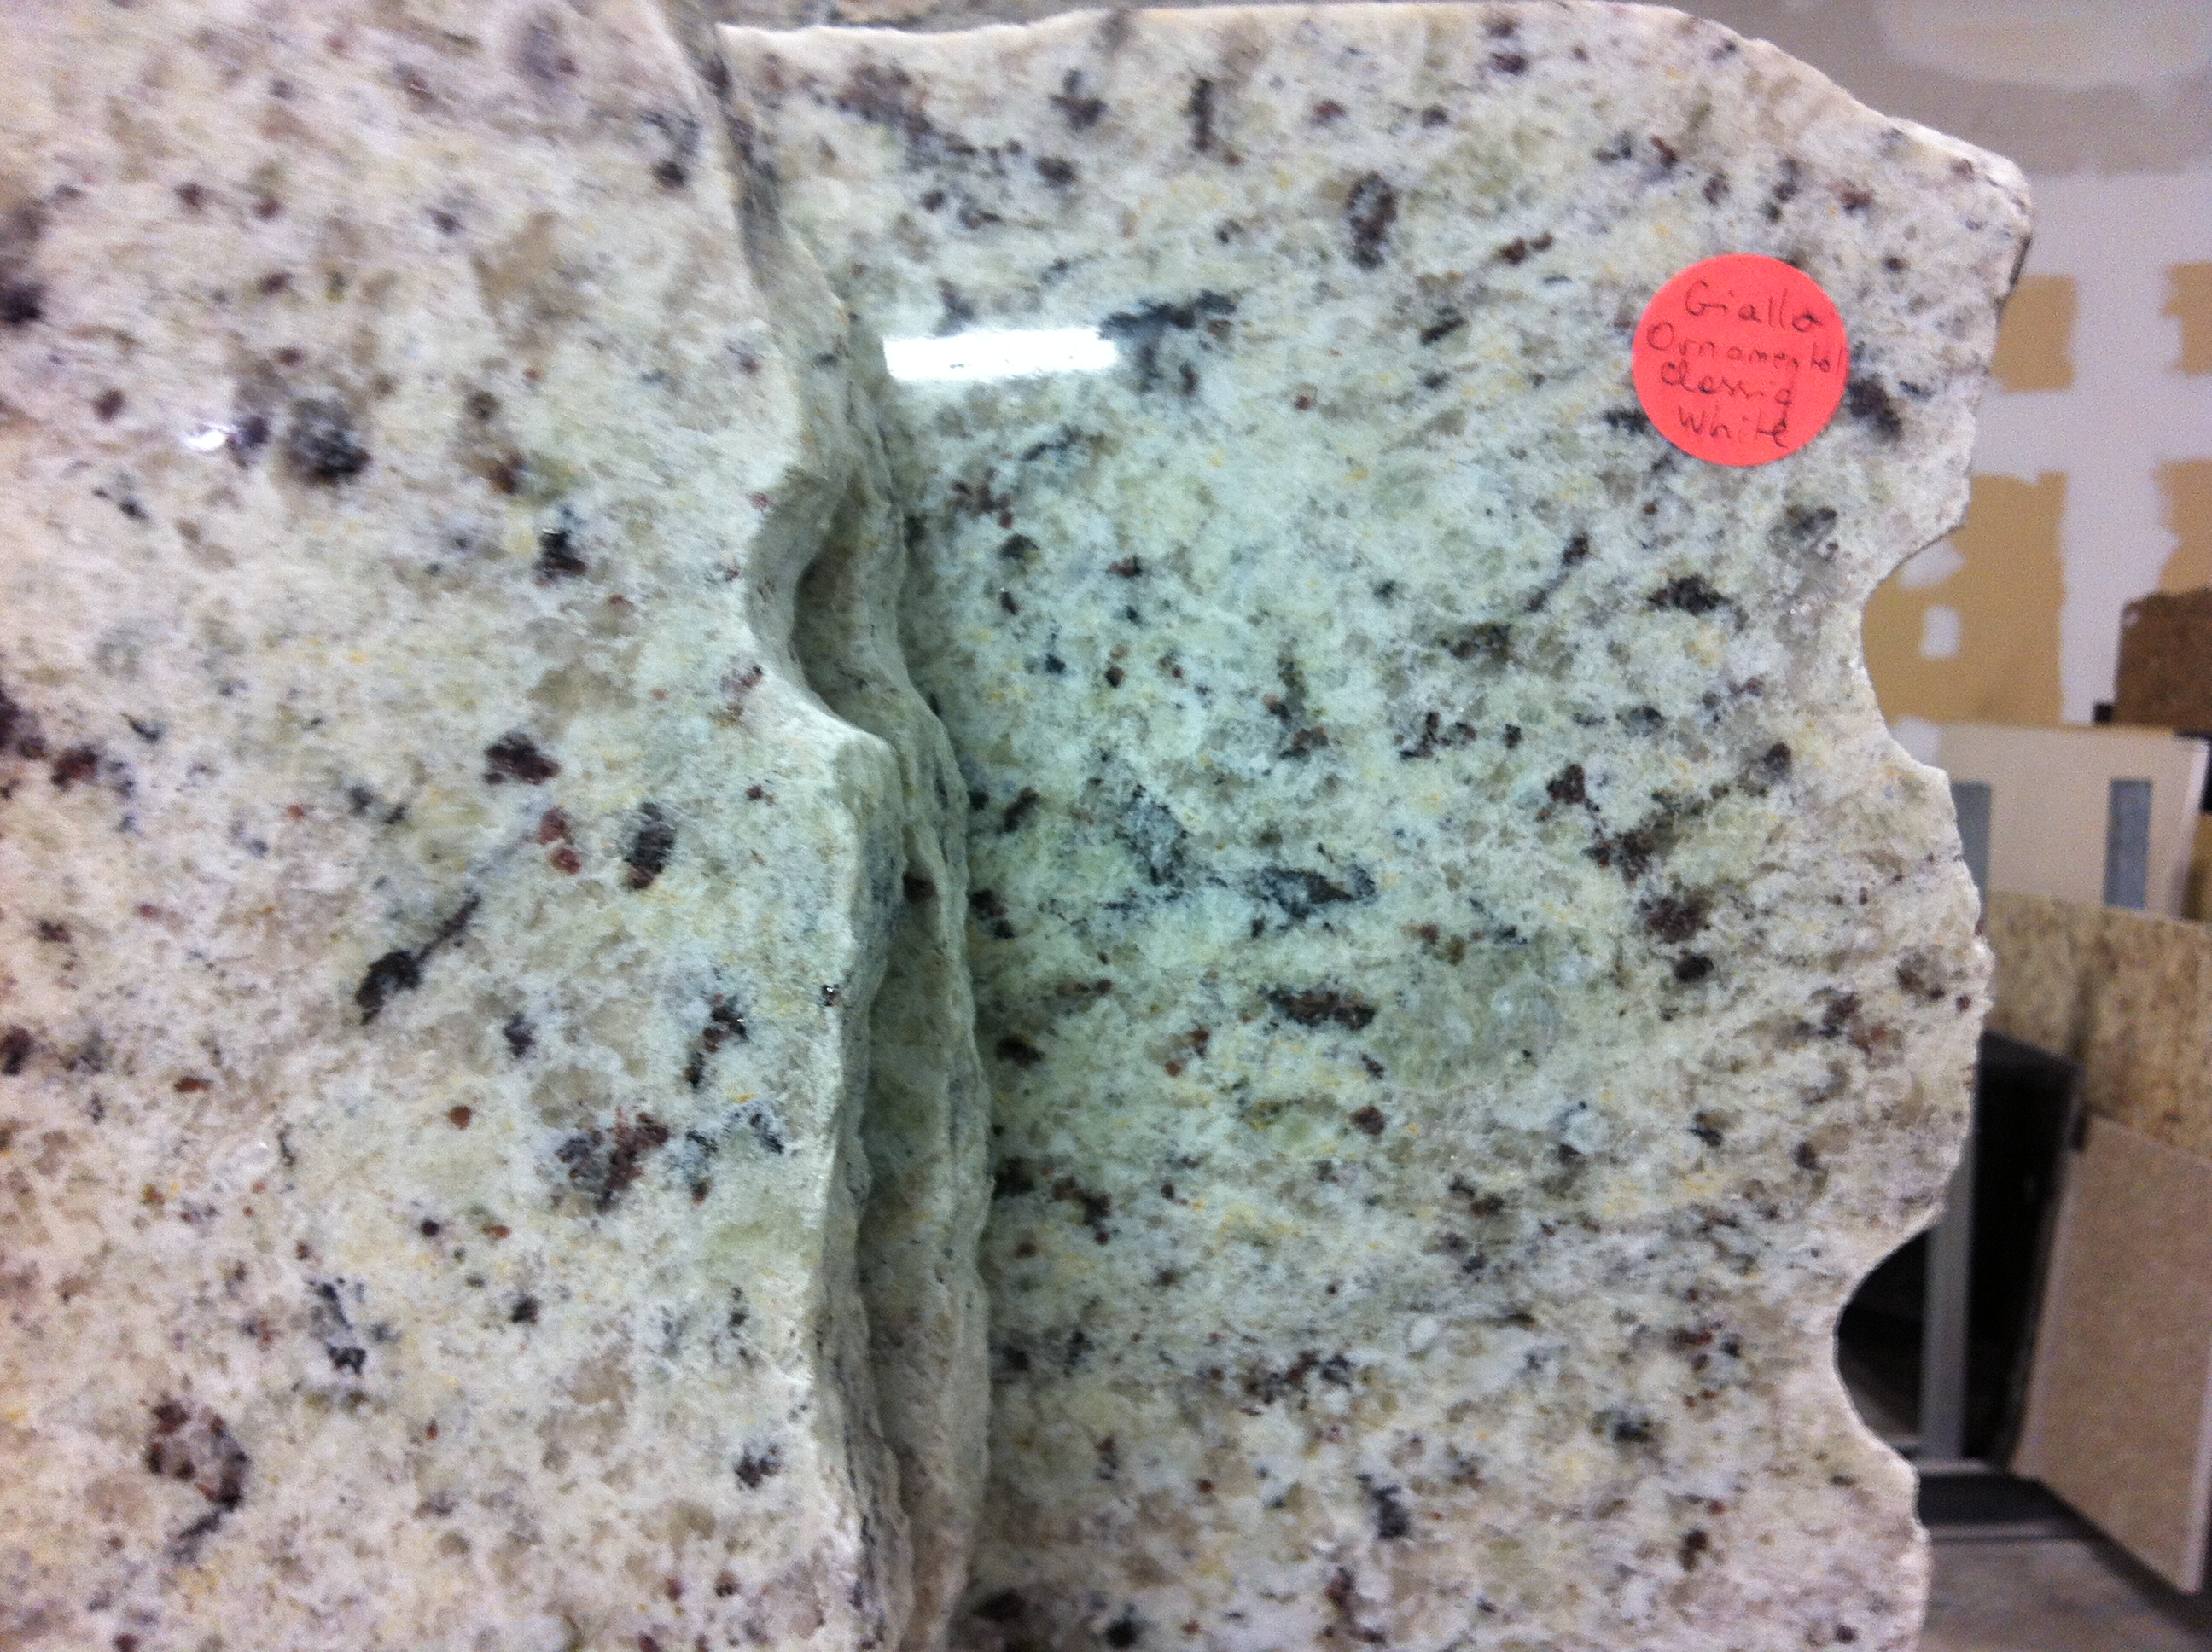 Cheap Alternatives To Granite Countertops On The Prowl Alternatives To White Marble Countertops